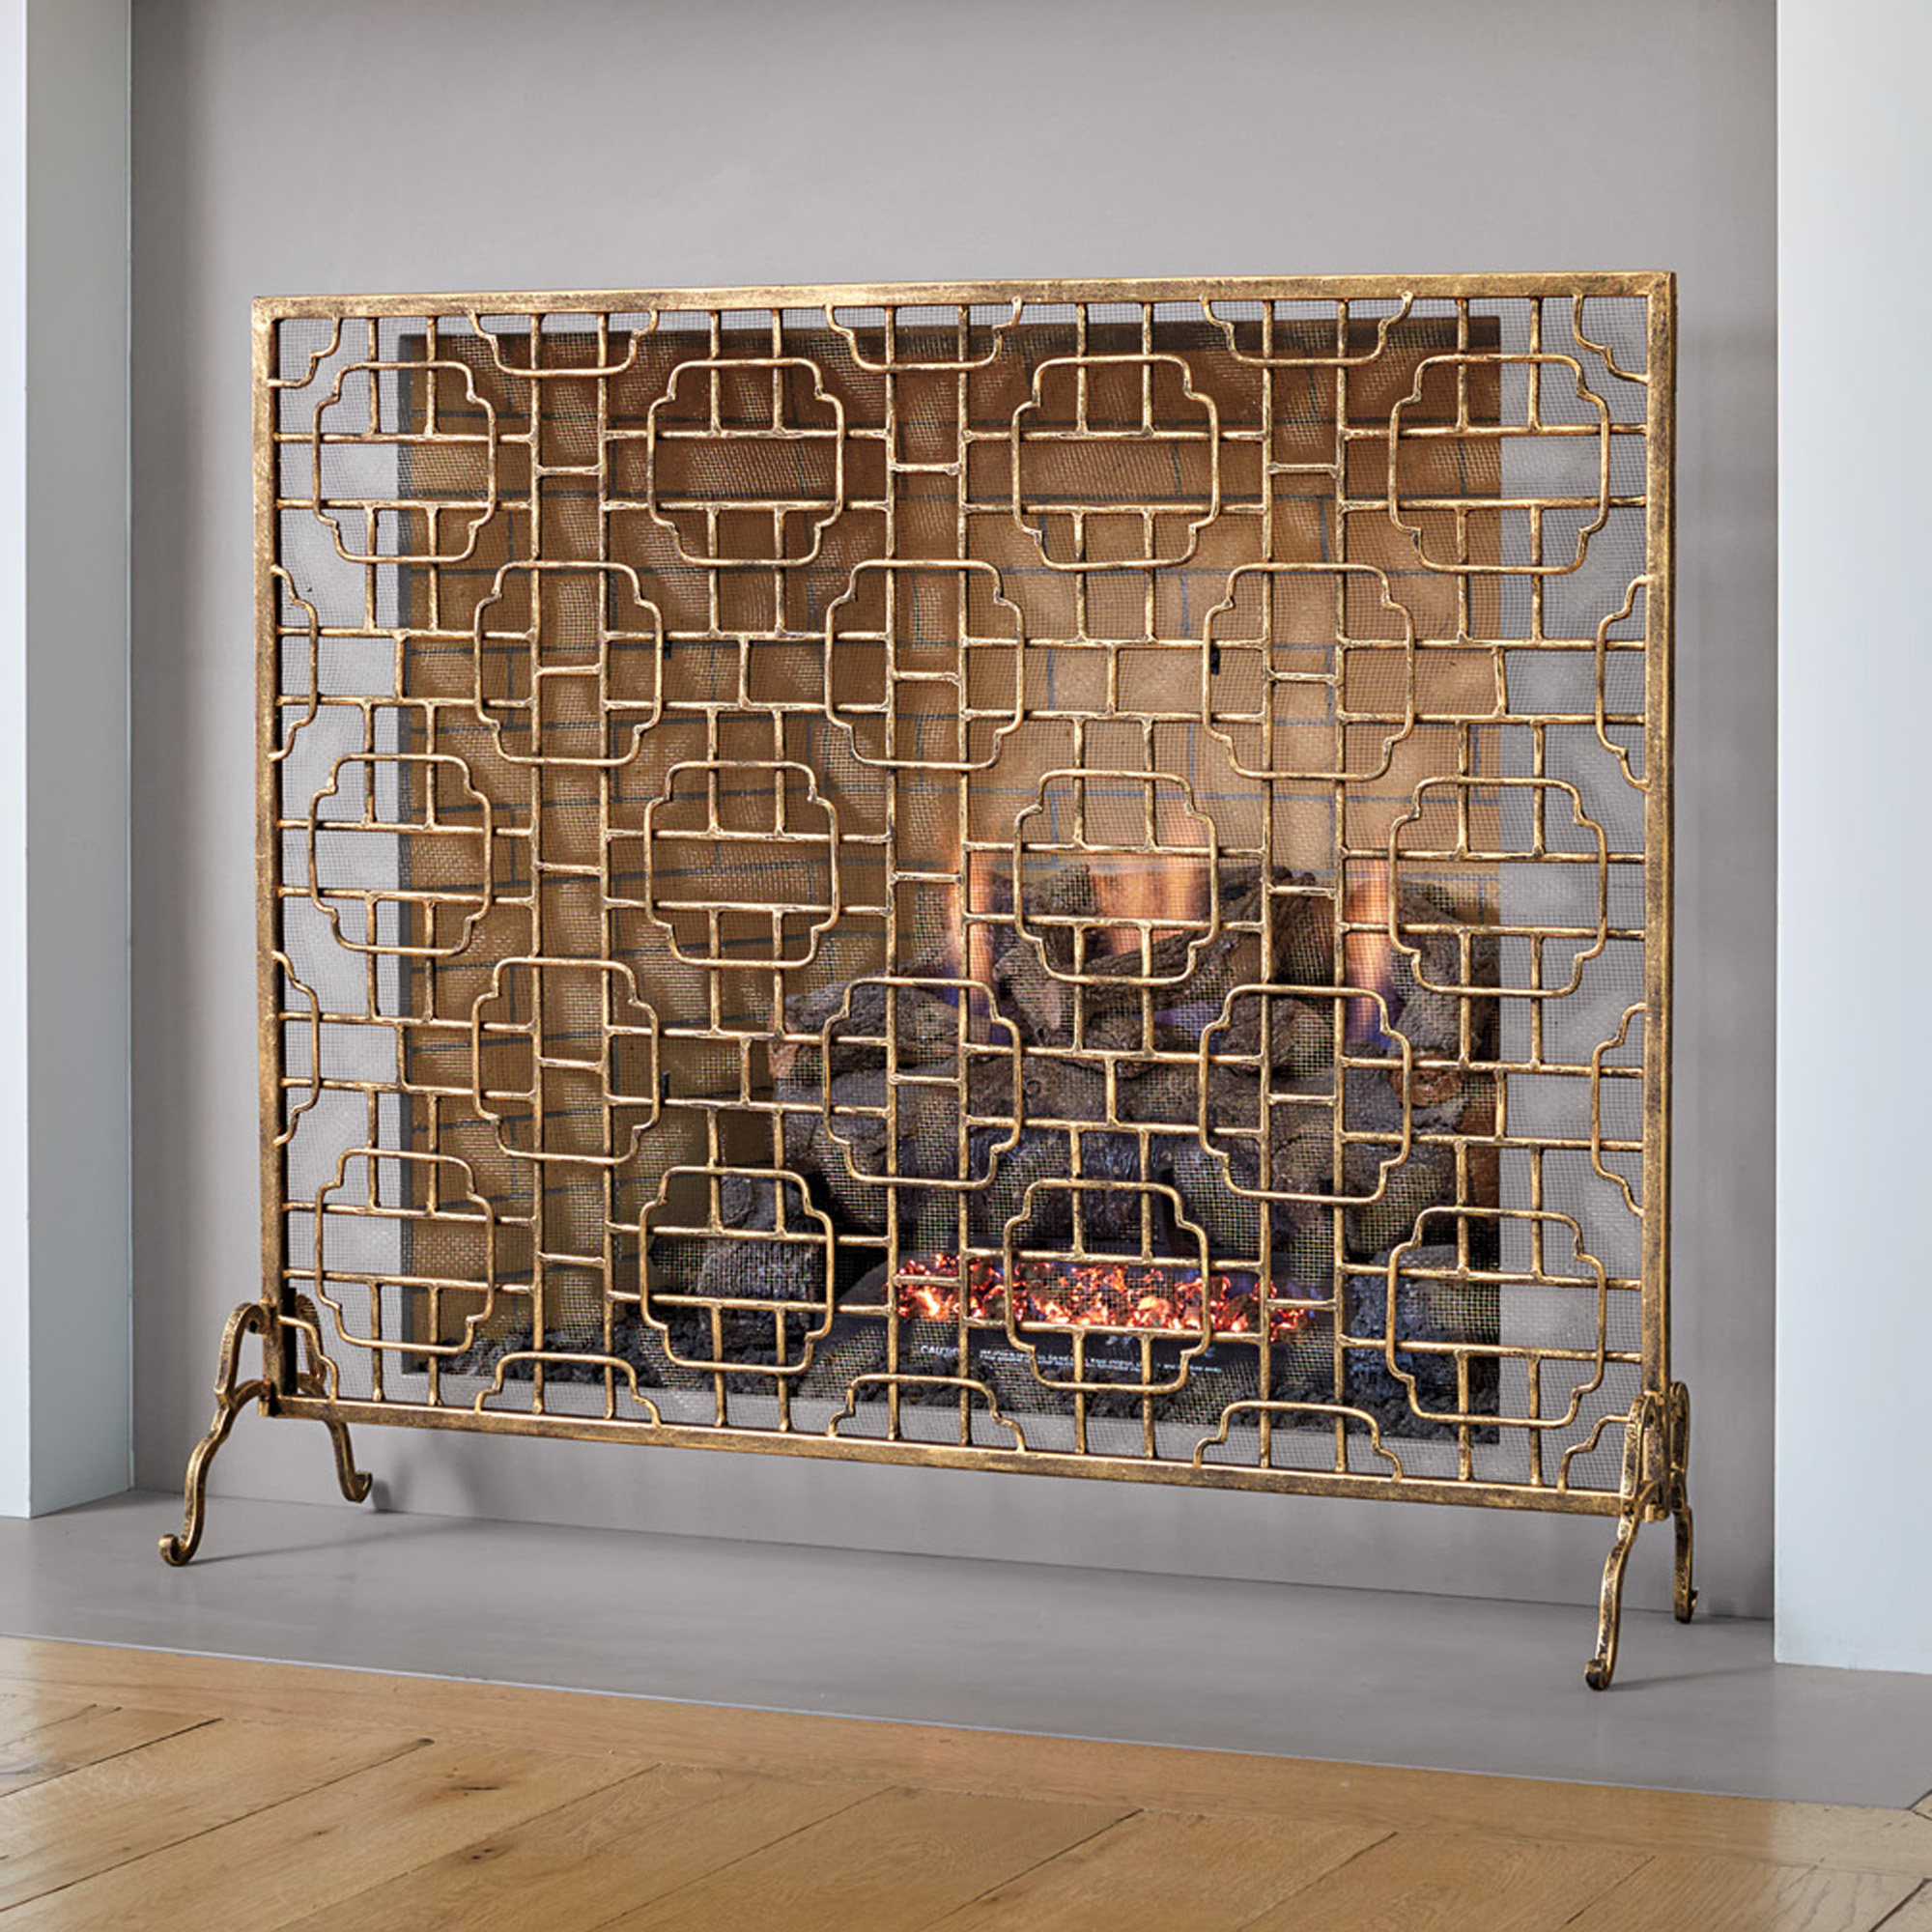 Gold Fretwork Fireplace Screen